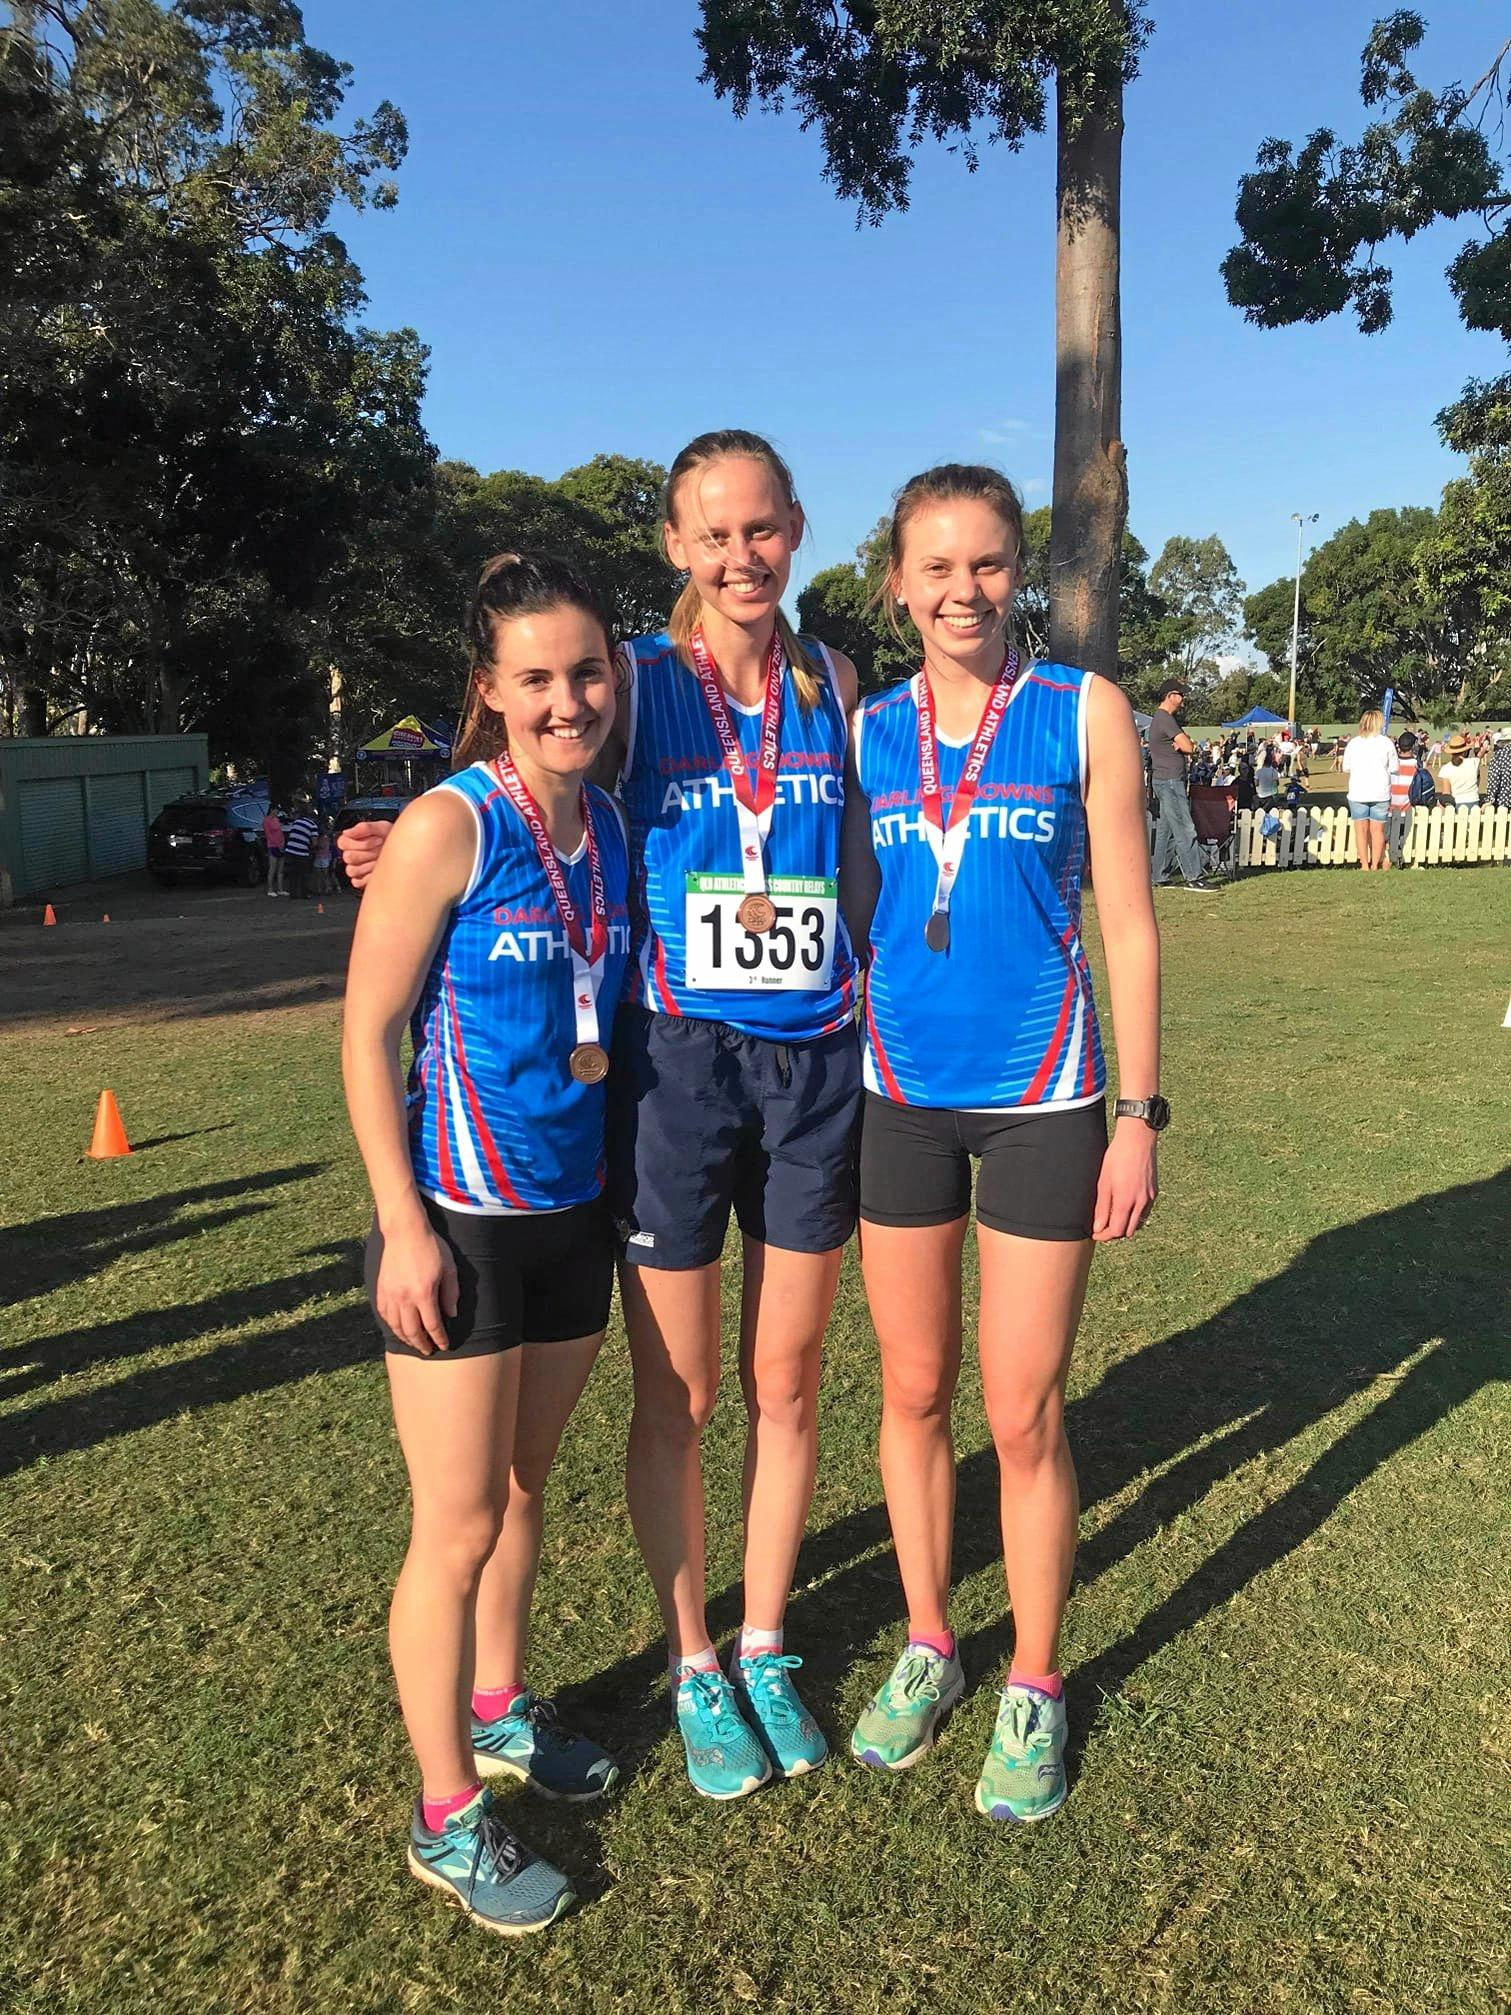 ALL SMILES: Darling Downs Athletics Club representatives (from left) Casey Richards, Lucy Young and Alex Young won a bronze medal in the open women's event at last weekend's Queensland Athletics Cross Country Relay Championships at Nudgee College.